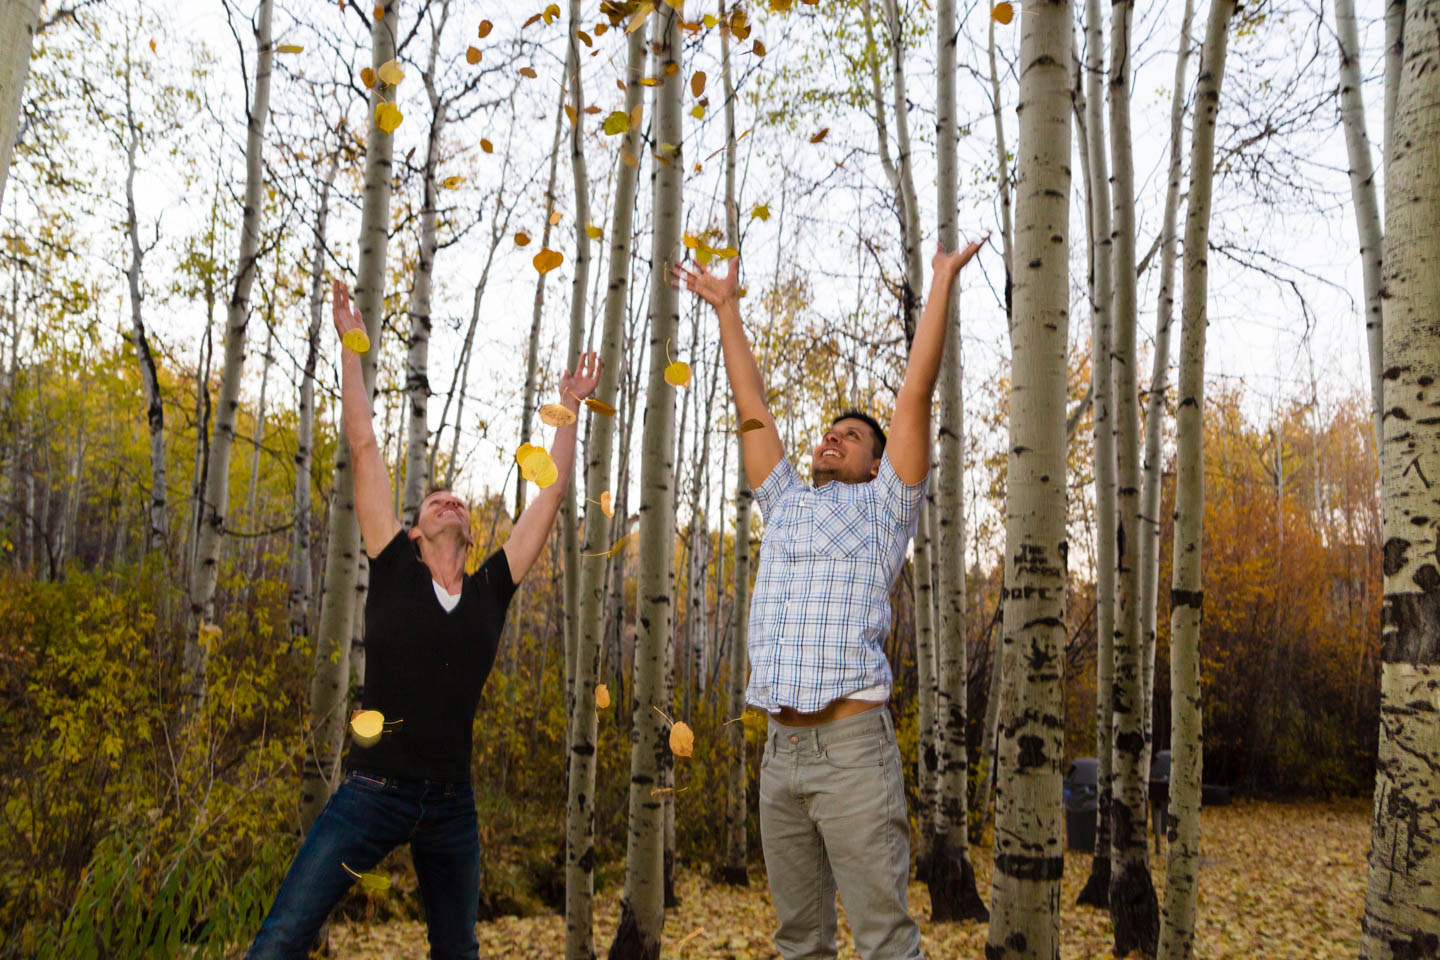 Aspen tree grove and engagement photos